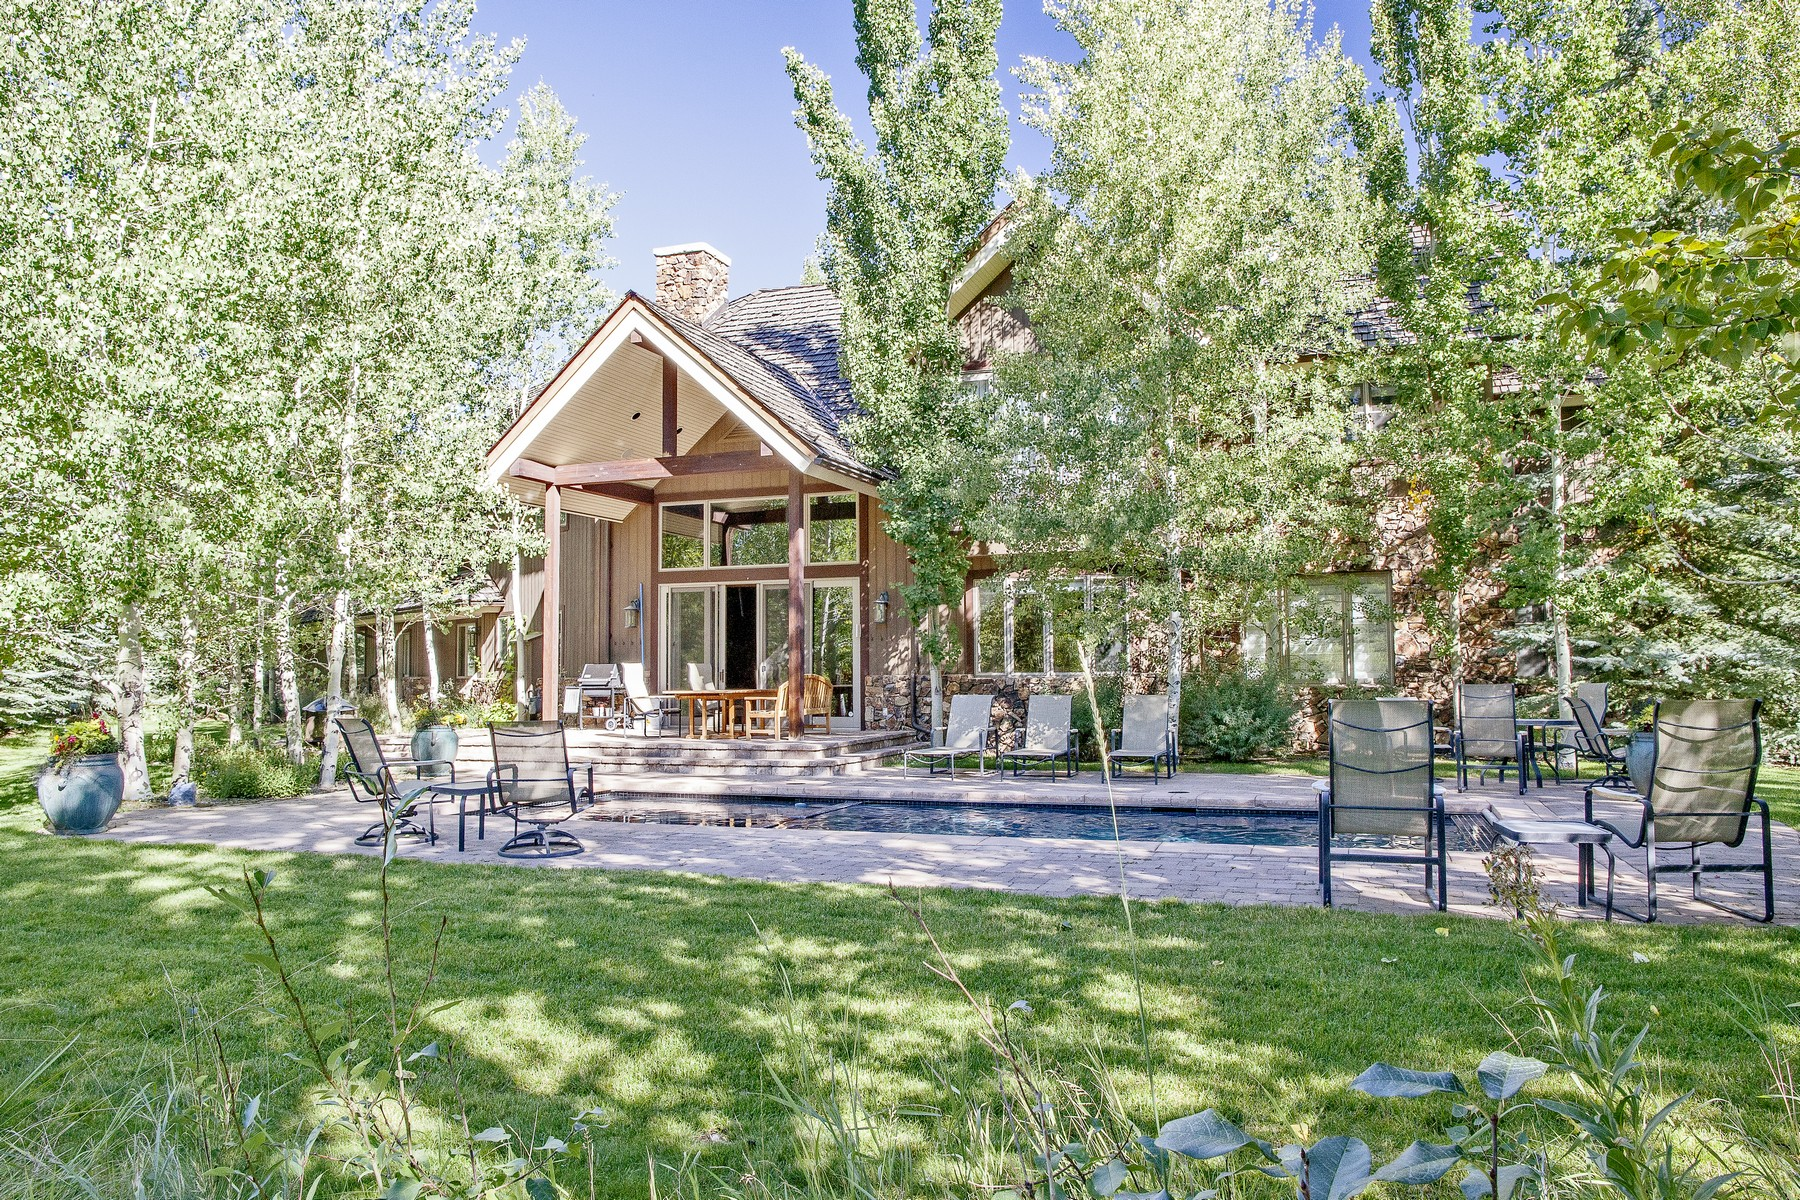 Additional photo for property listing at Spectacular Home Near the Big Wood River 33 Cliffside Dr Ketchum, Idaho 83340 Estados Unidos